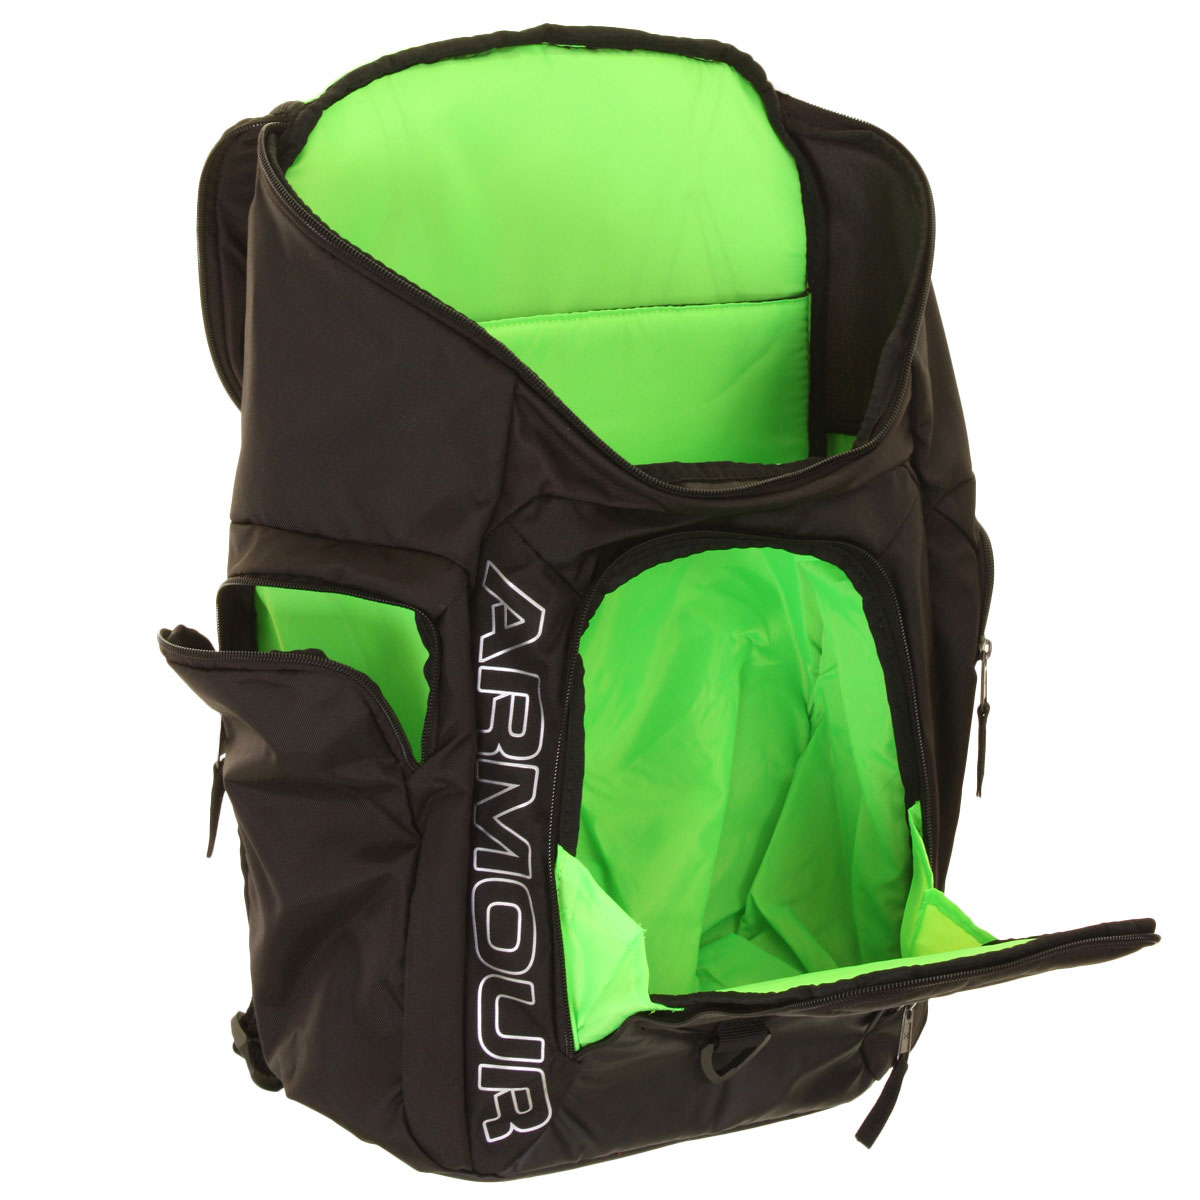 55dab66d705d green under armour backpack cheap   OFF72% The Largest Catalog Discounts